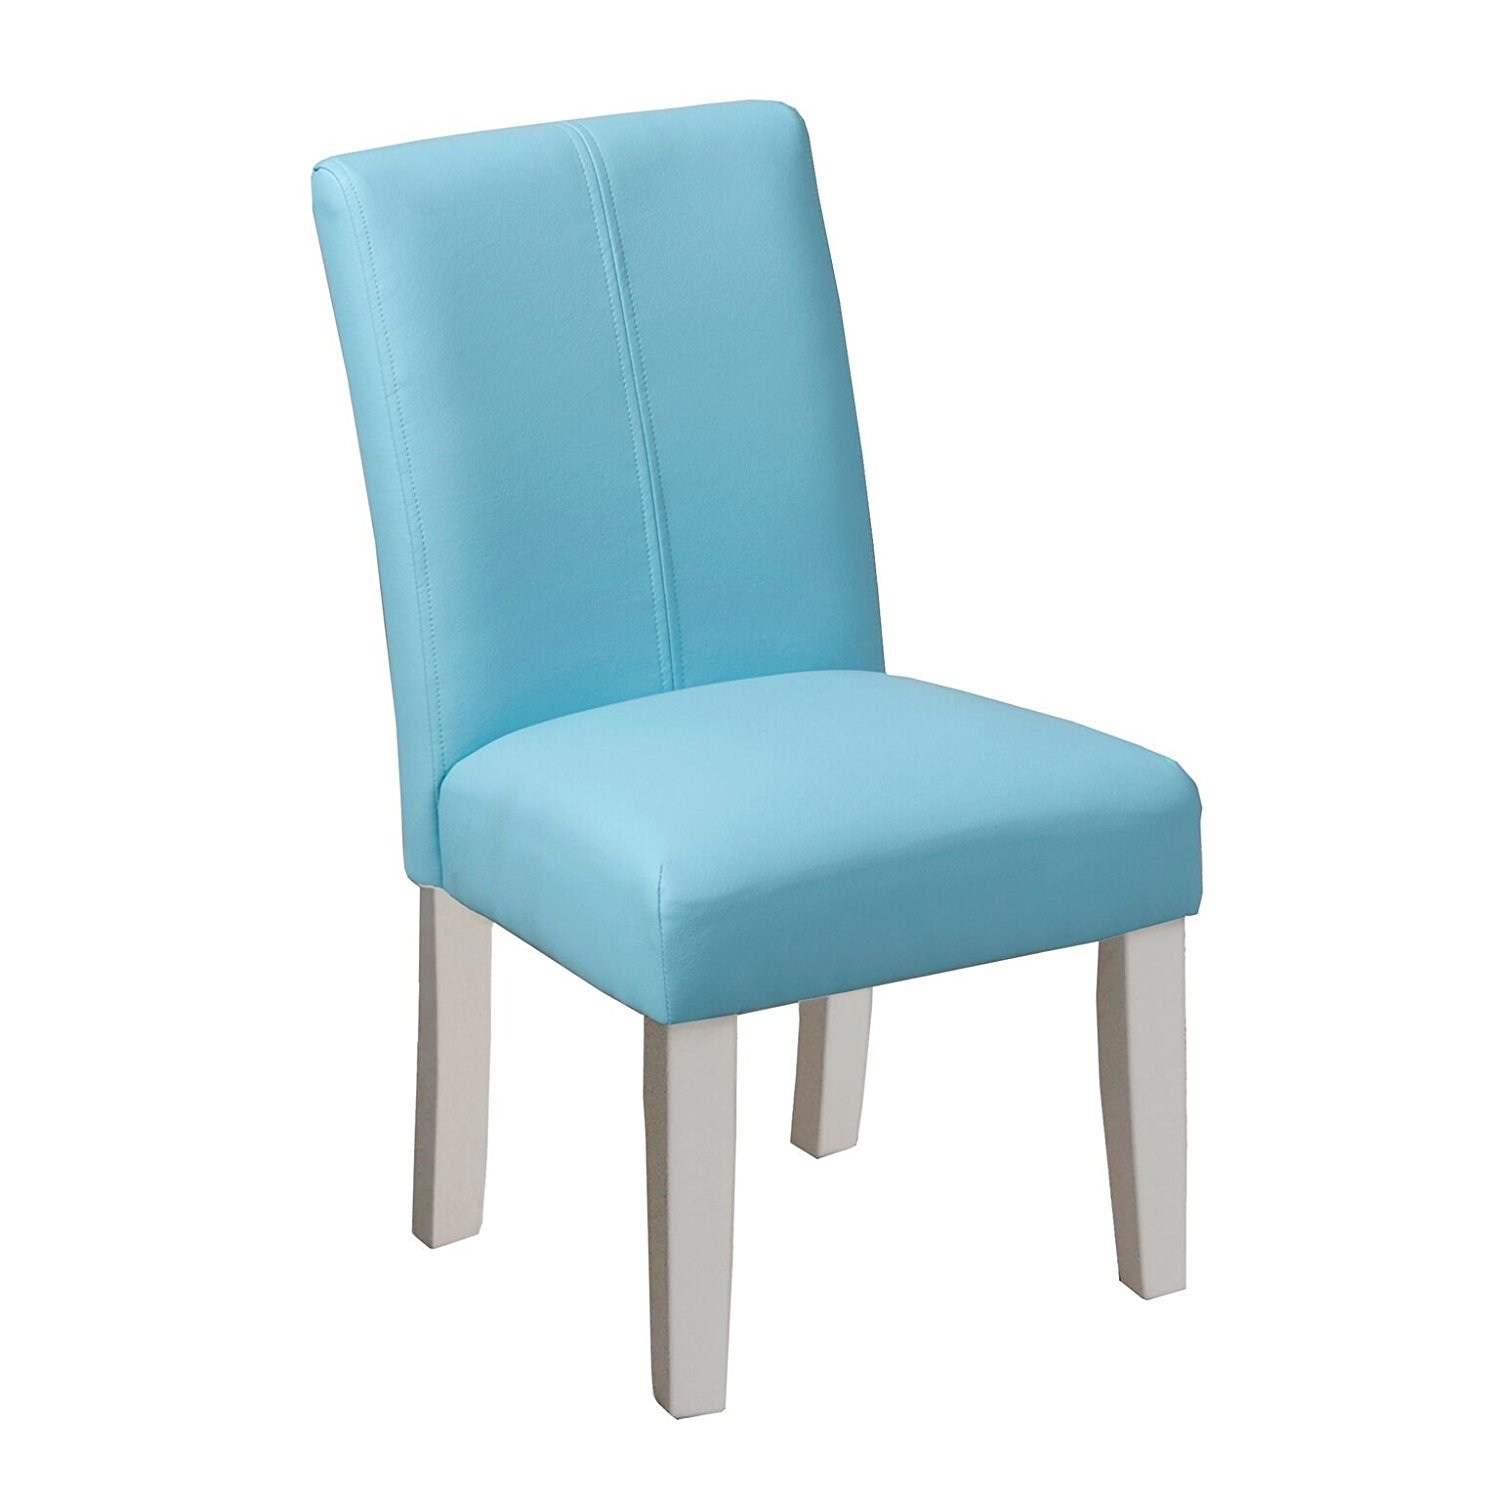 Kinfine Juvenile Parsons Faux Leather Chair, Aqua (Set of 2) by